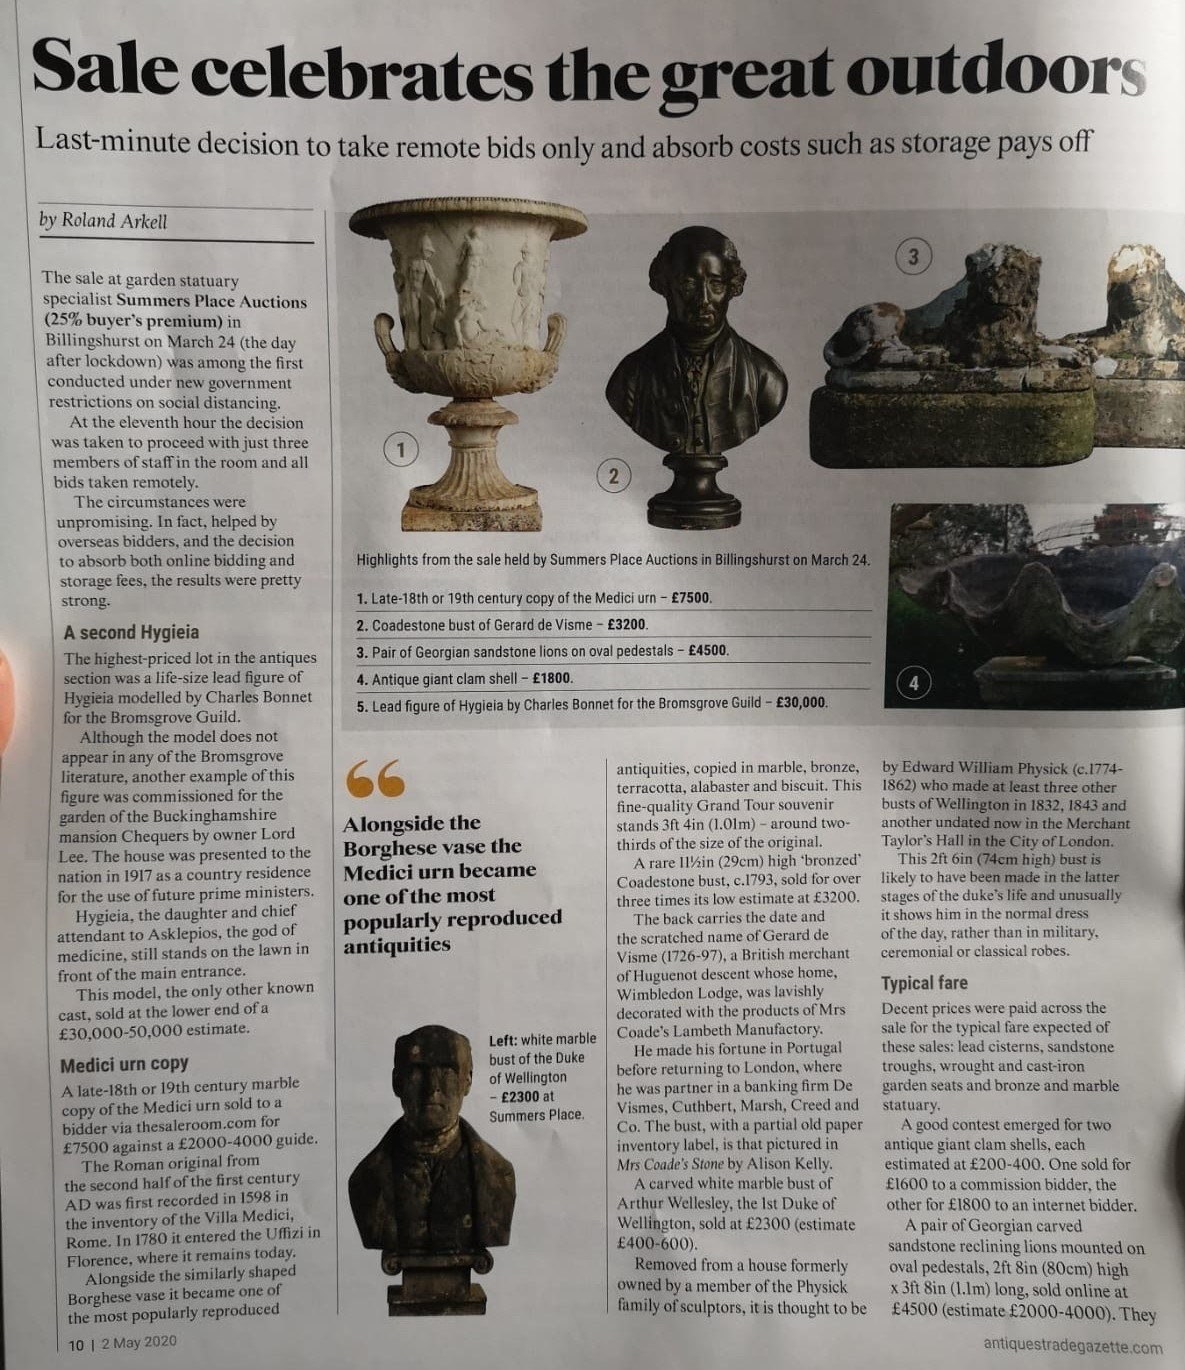 The Antiques Trade Gazette review of the March 2020 auction